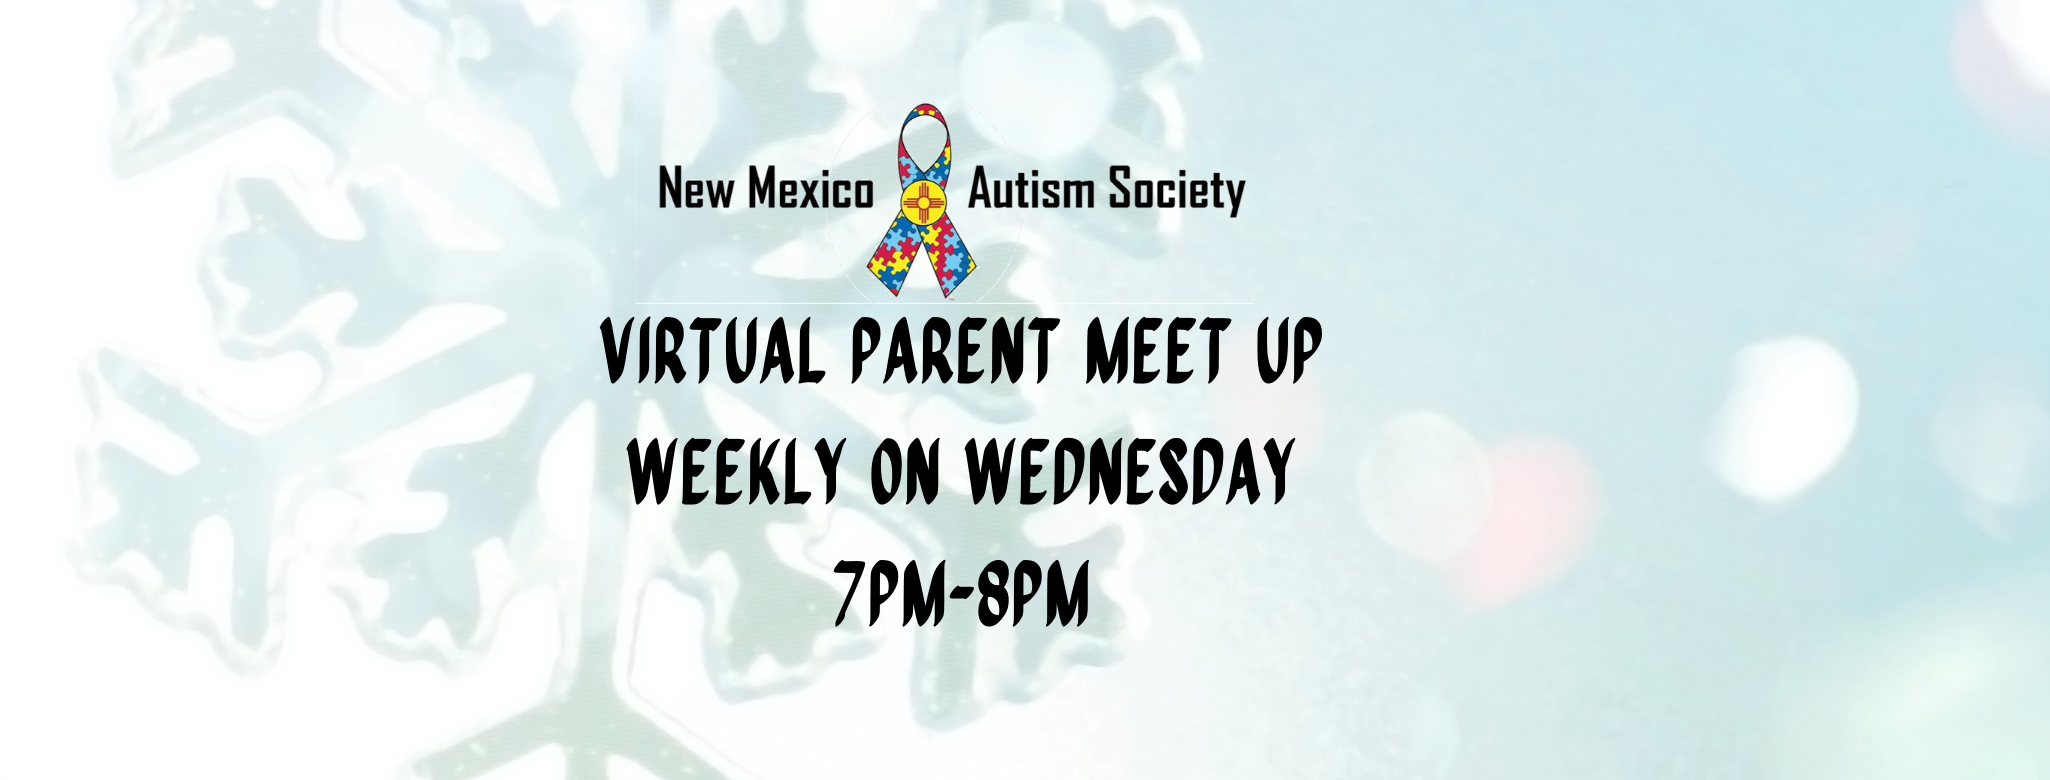 Virtual Parent Meet Image